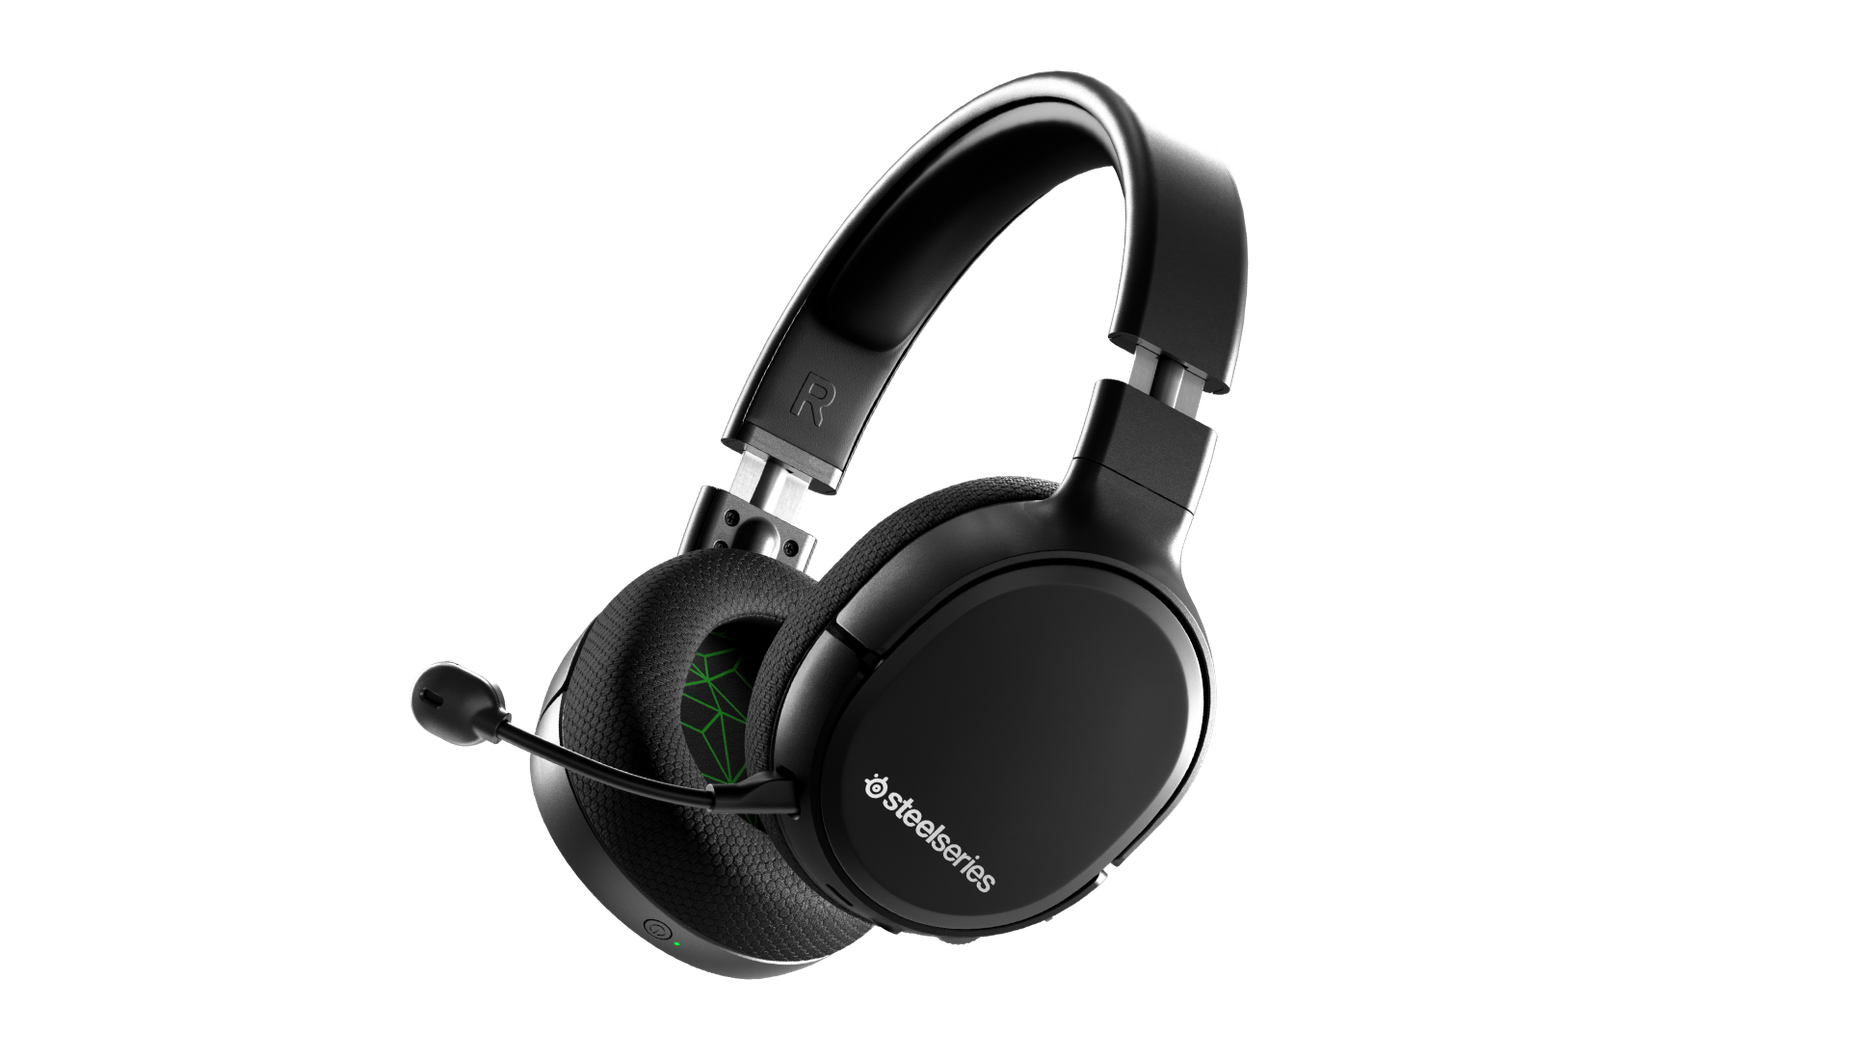 Arctis 1 Wireless for Xbox headset floating on a blank background